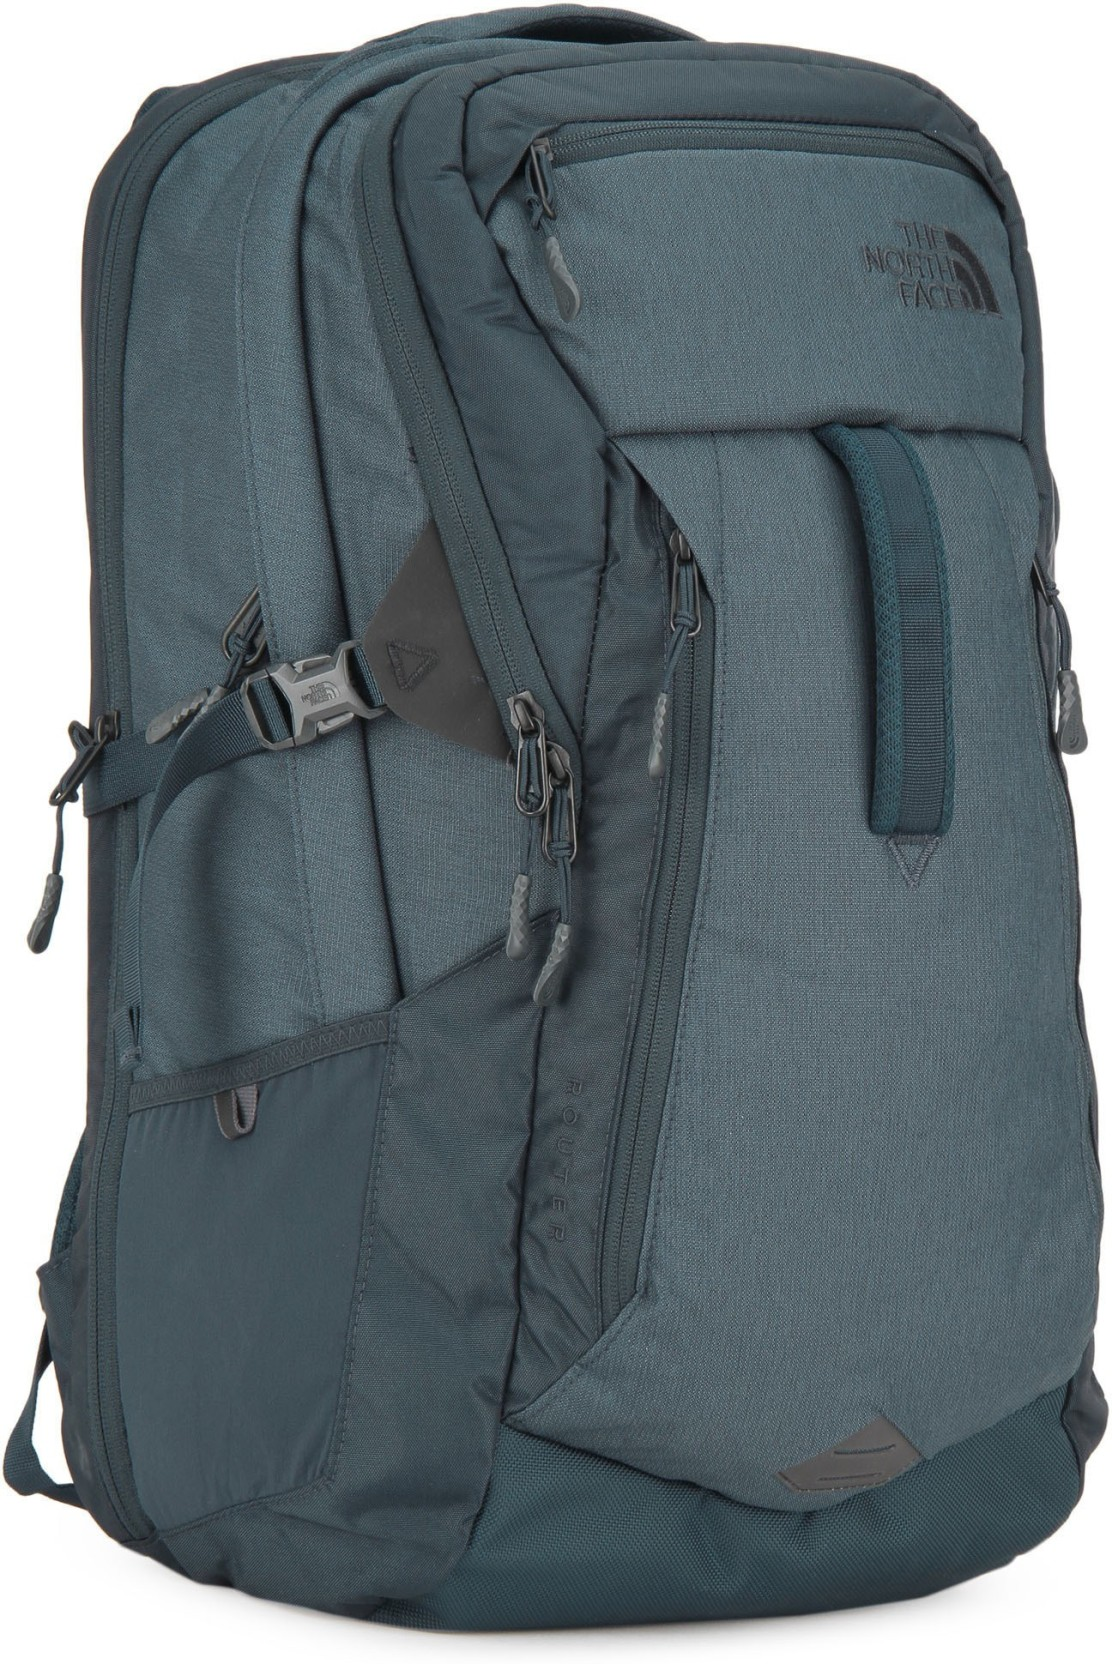 343517263998 The North Face Backpack India- Fenix Toulouse Handball